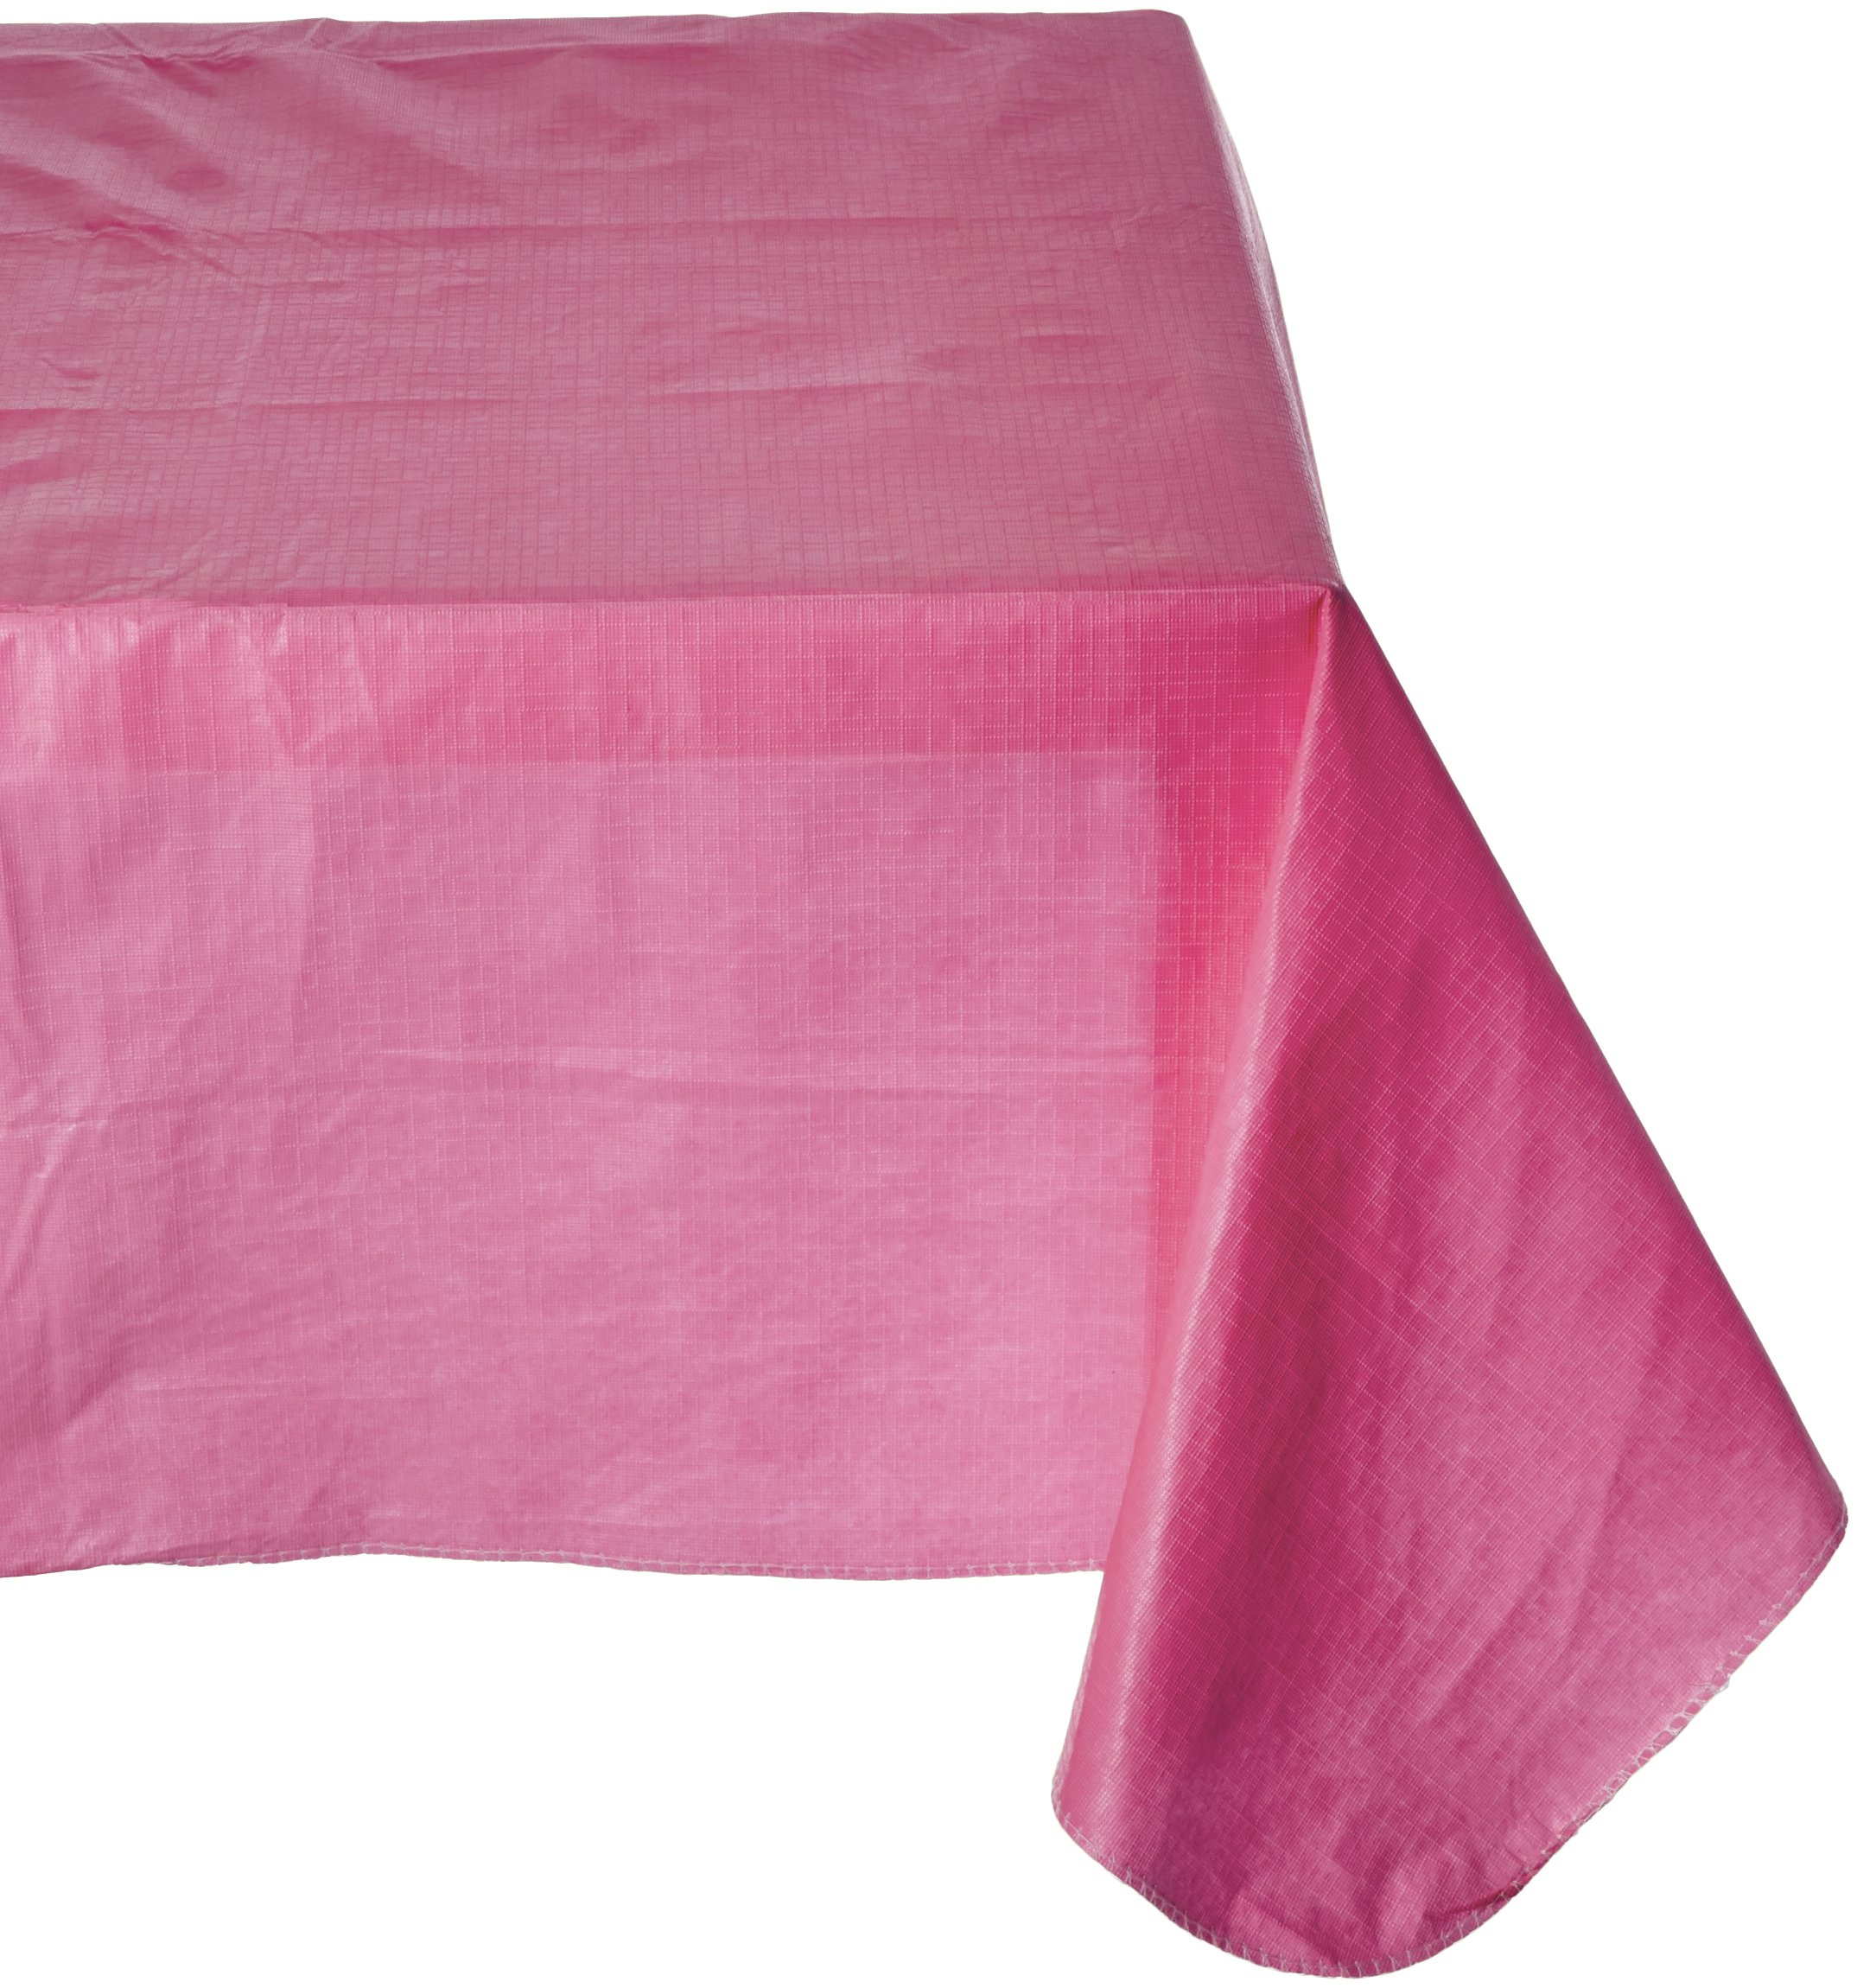 Amscan Durable Indoor/Outdoor Flannel Backed in Solid Color Bright Pink Vinyl 52'' x 90'' Others Party Supplies (6 Piece)